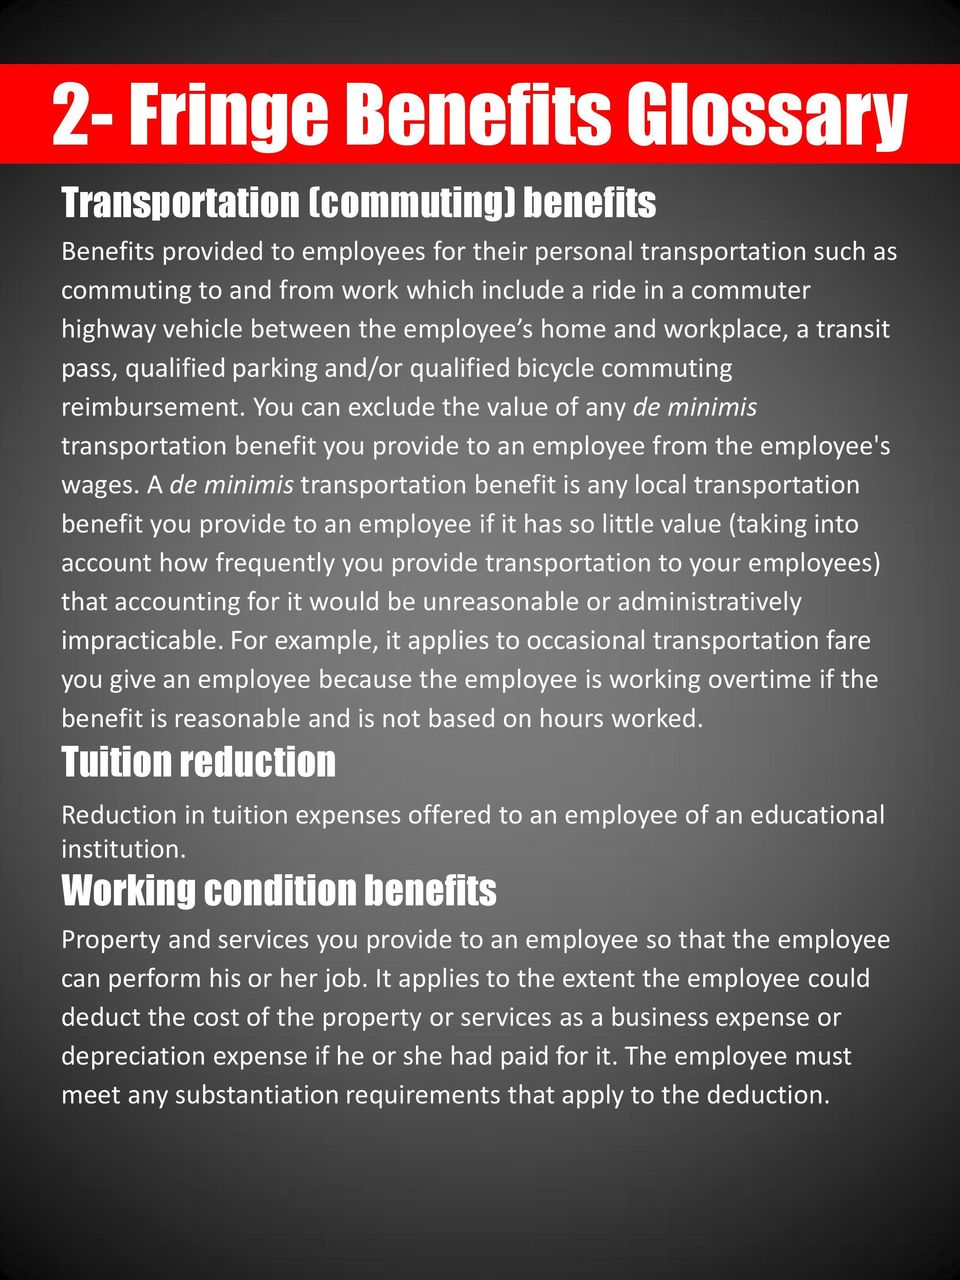 You can exclude the value of any de minimis transportation benefit you provide to an employee from the employee's wages.